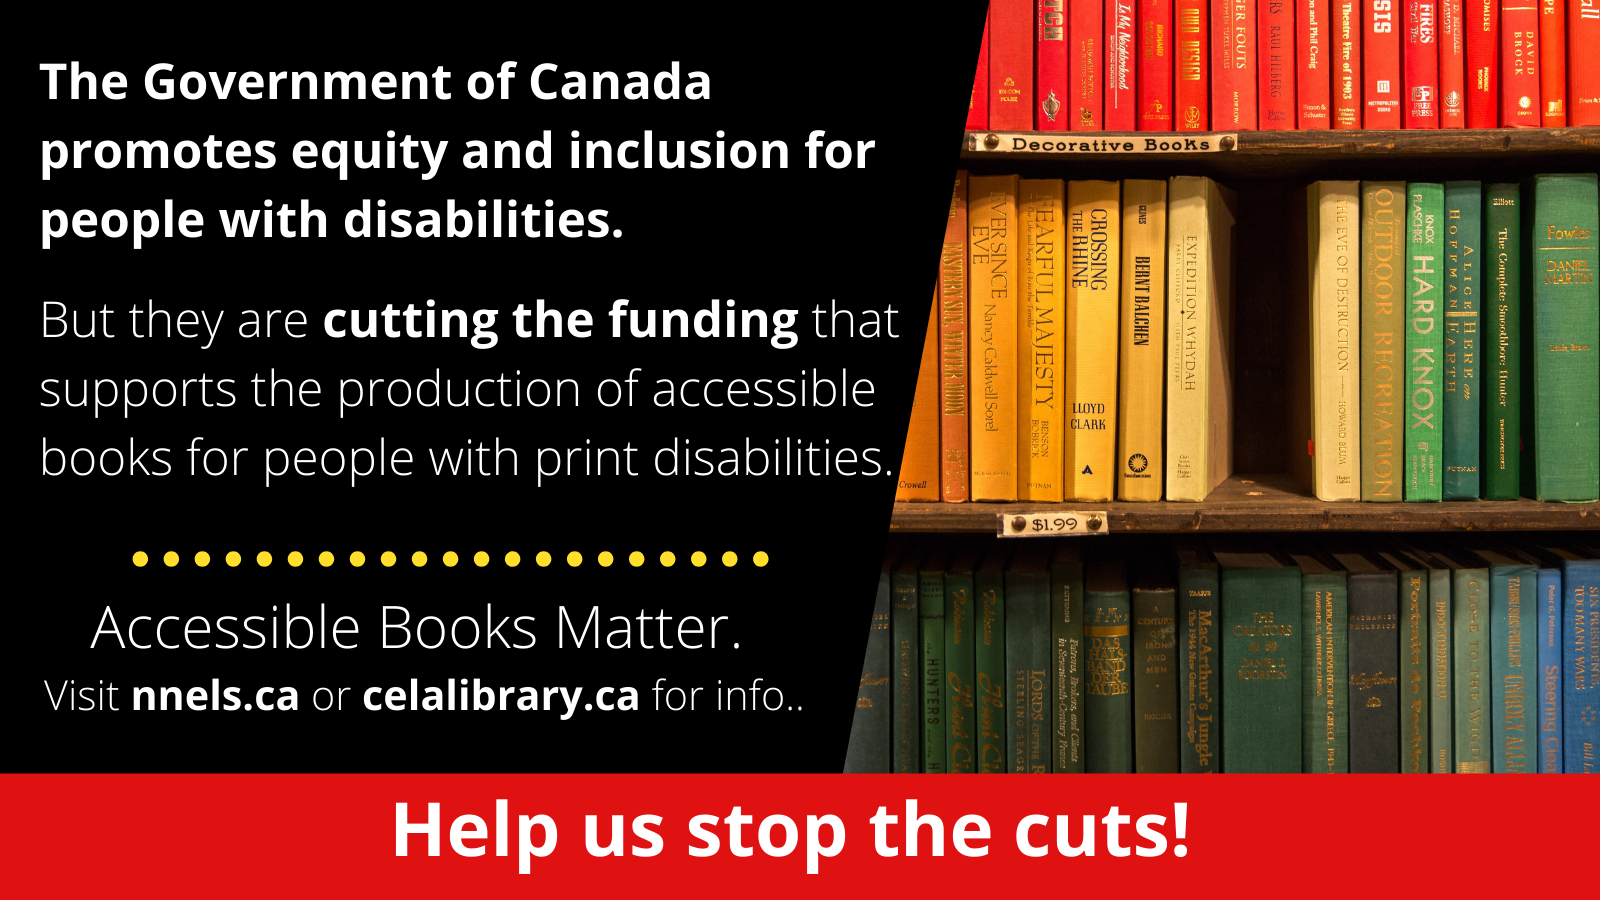 The graphic is cut in half. On the right is an image of 3 shelves of books. At the center of the middle shelf a book is missing creating a black hole. On the left is the following text: The Government of Canada promotes equity and inclusion for people with disabilities. And the Government of Canada is cutting the funding that supports their production. Accessible Books Matter. Visit nnels.ca or celalibrary.ca for info. At the bottom in a red bar is white text which reads Help us stop the cuts!